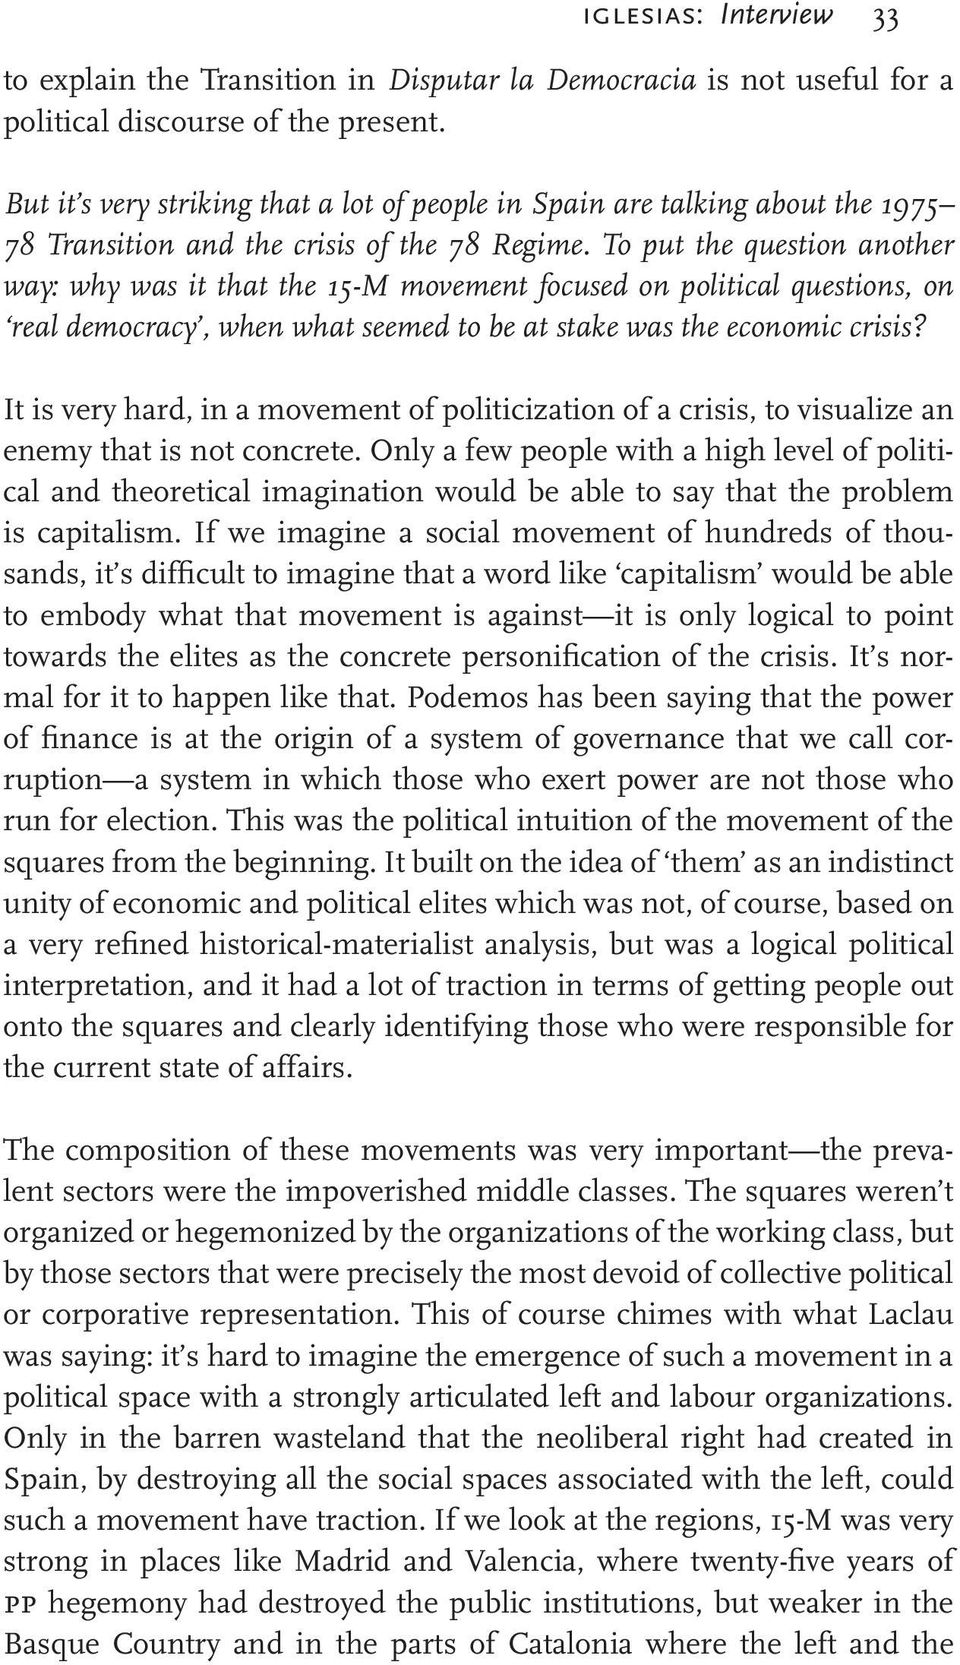 To put the question another way: why was it that the 15-M movement focused on political questions, on real democracy, when what seemed to be at stake was the economic crisis?